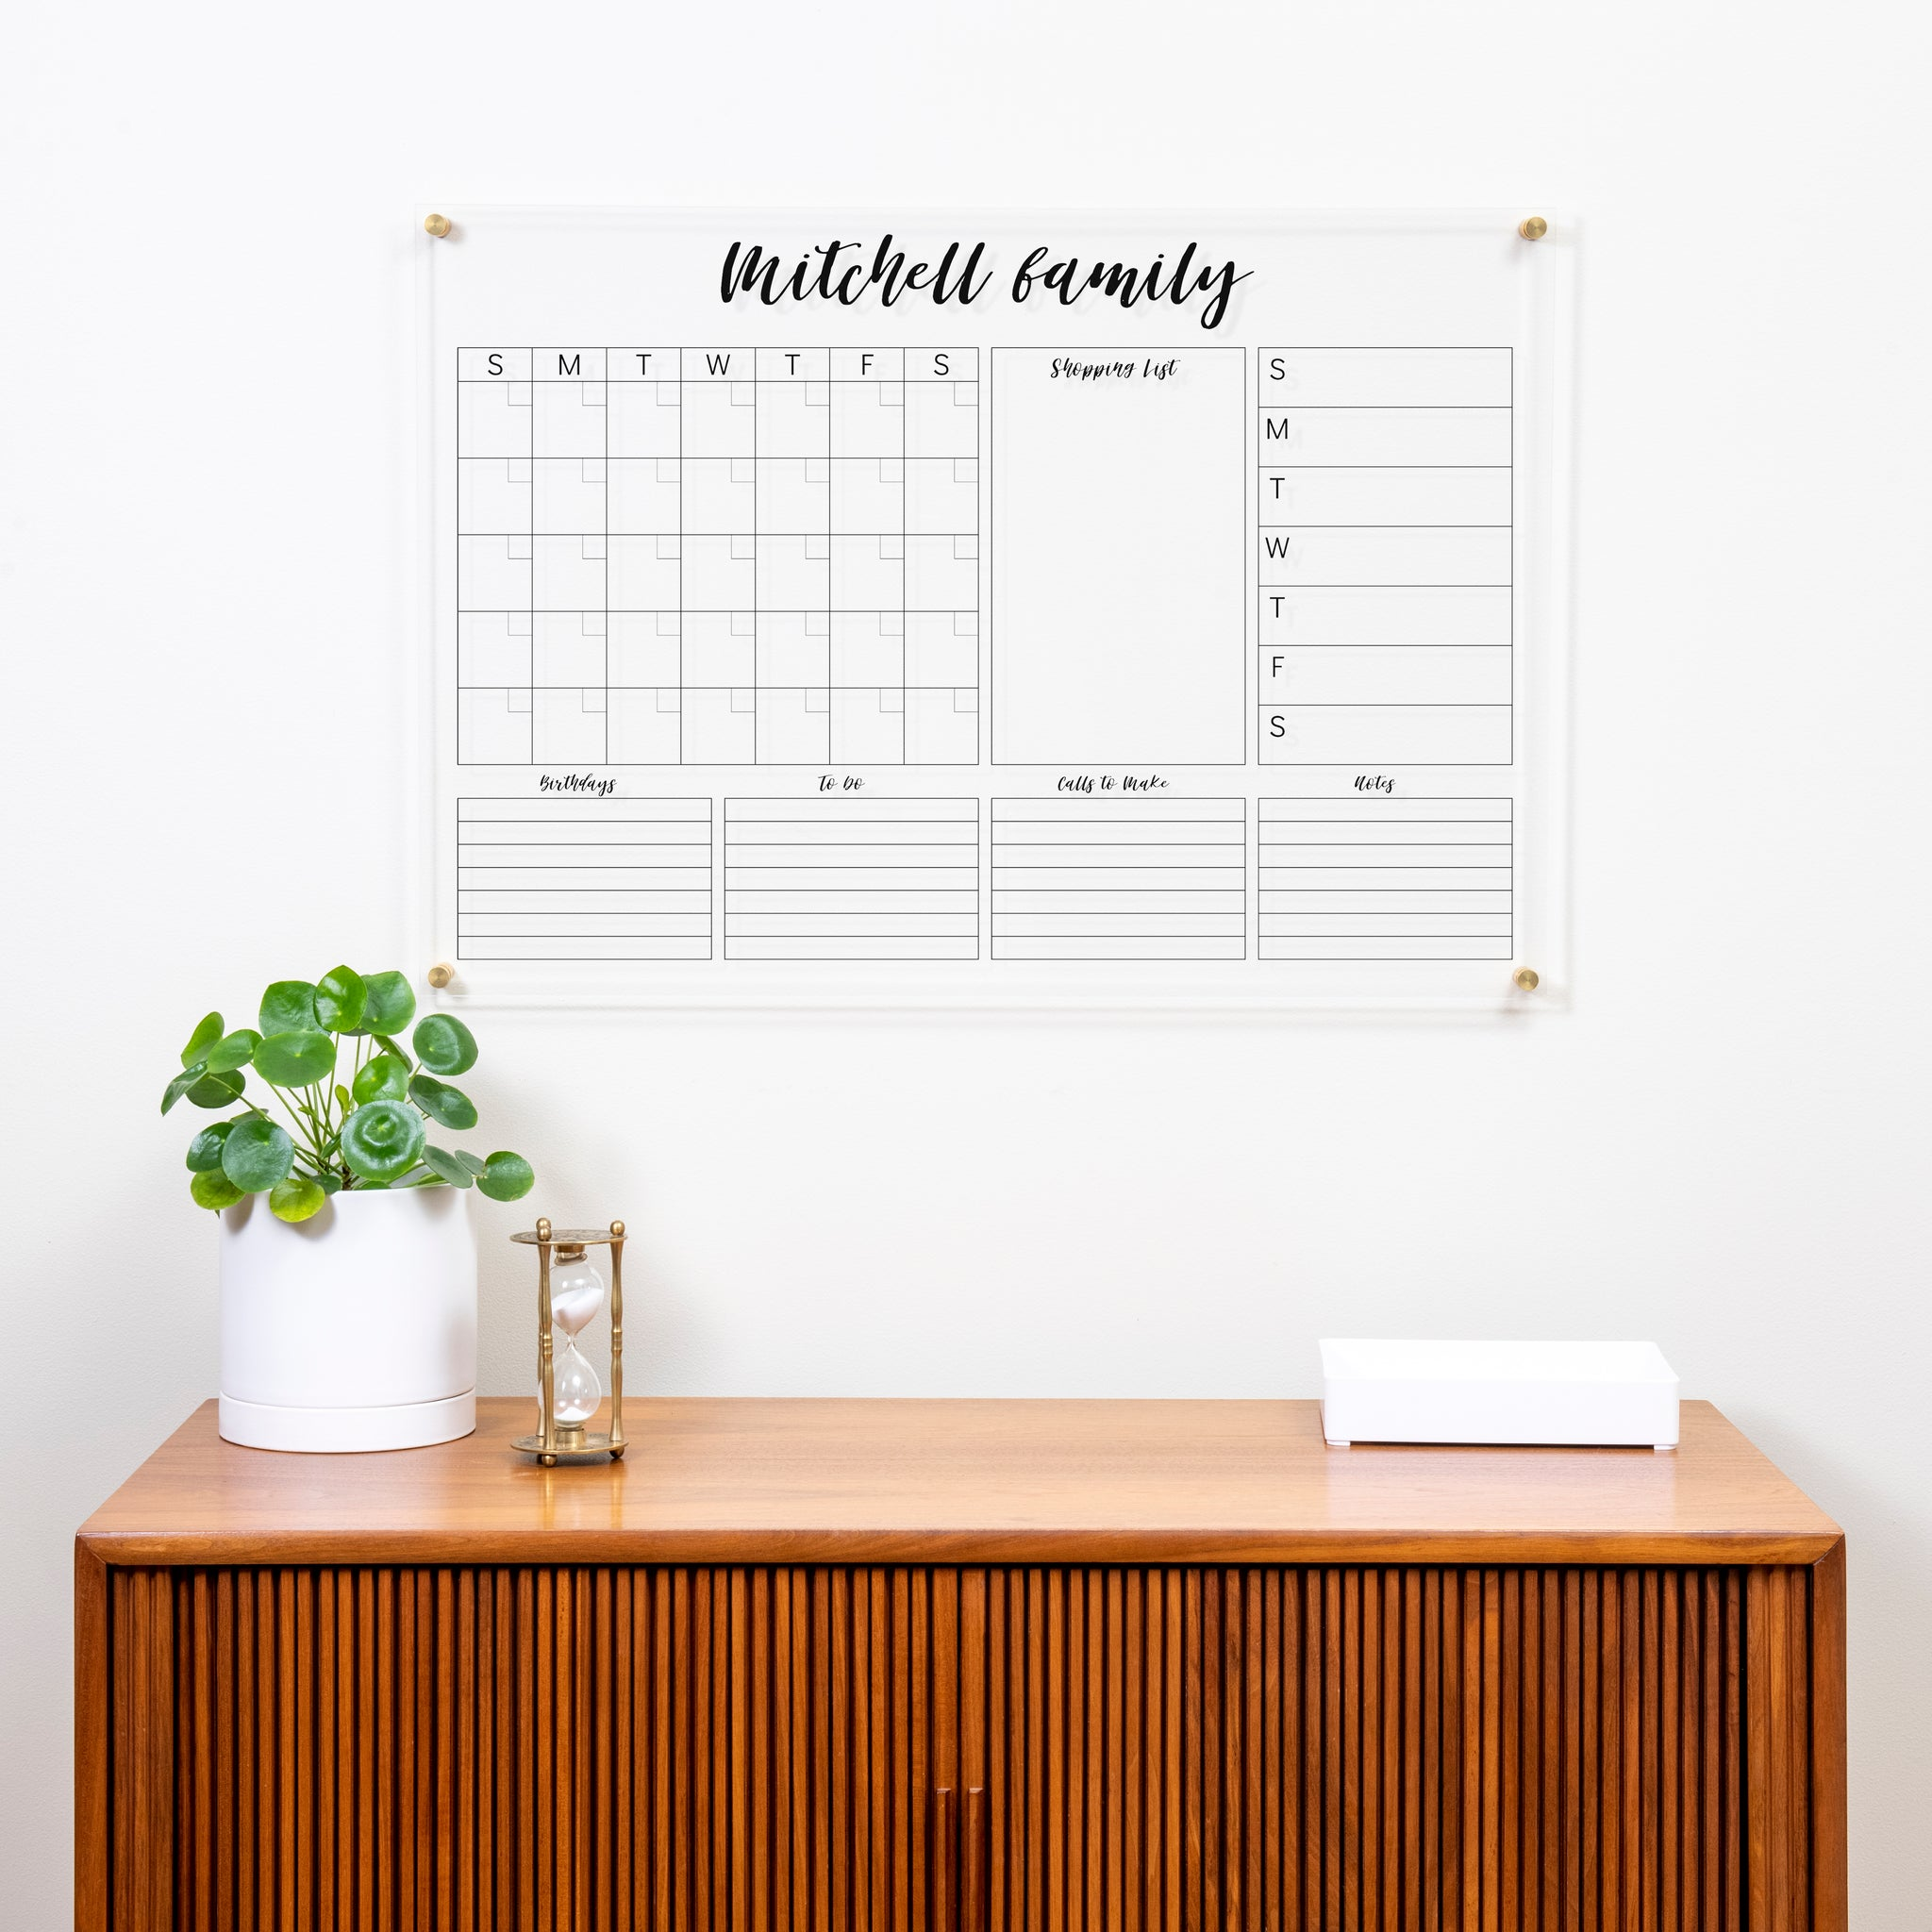 Clear Personalized Acrylic Calendar for Wall